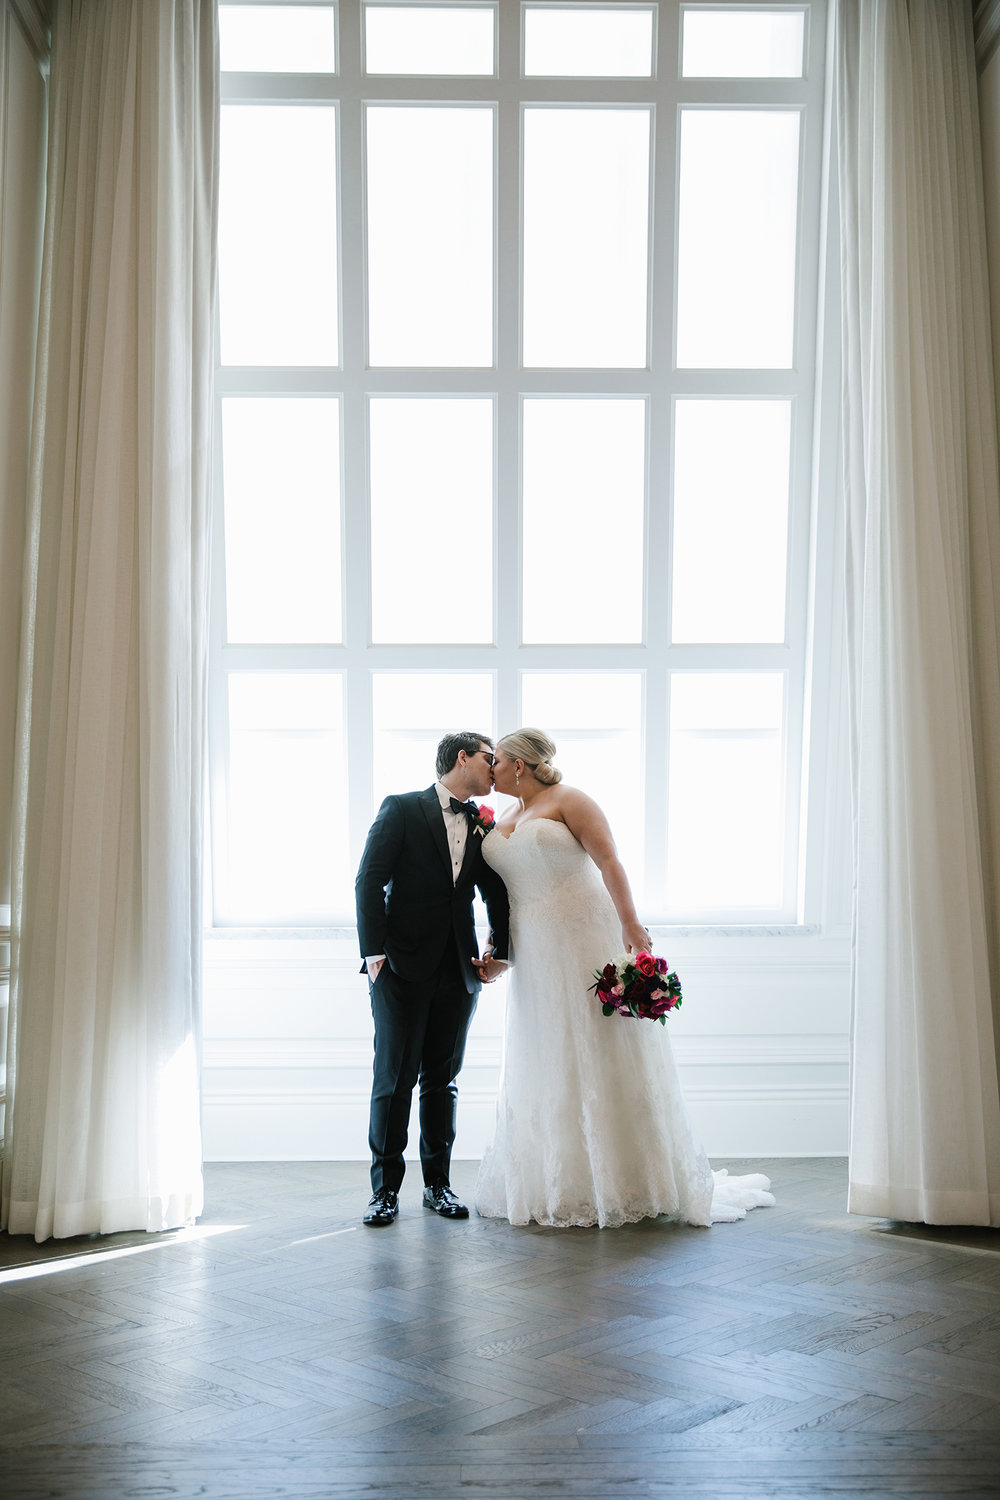 Dallas Weddings Planner - Allday Events - Katie + Matthew at The Adolphus Hotel - 198.jpg